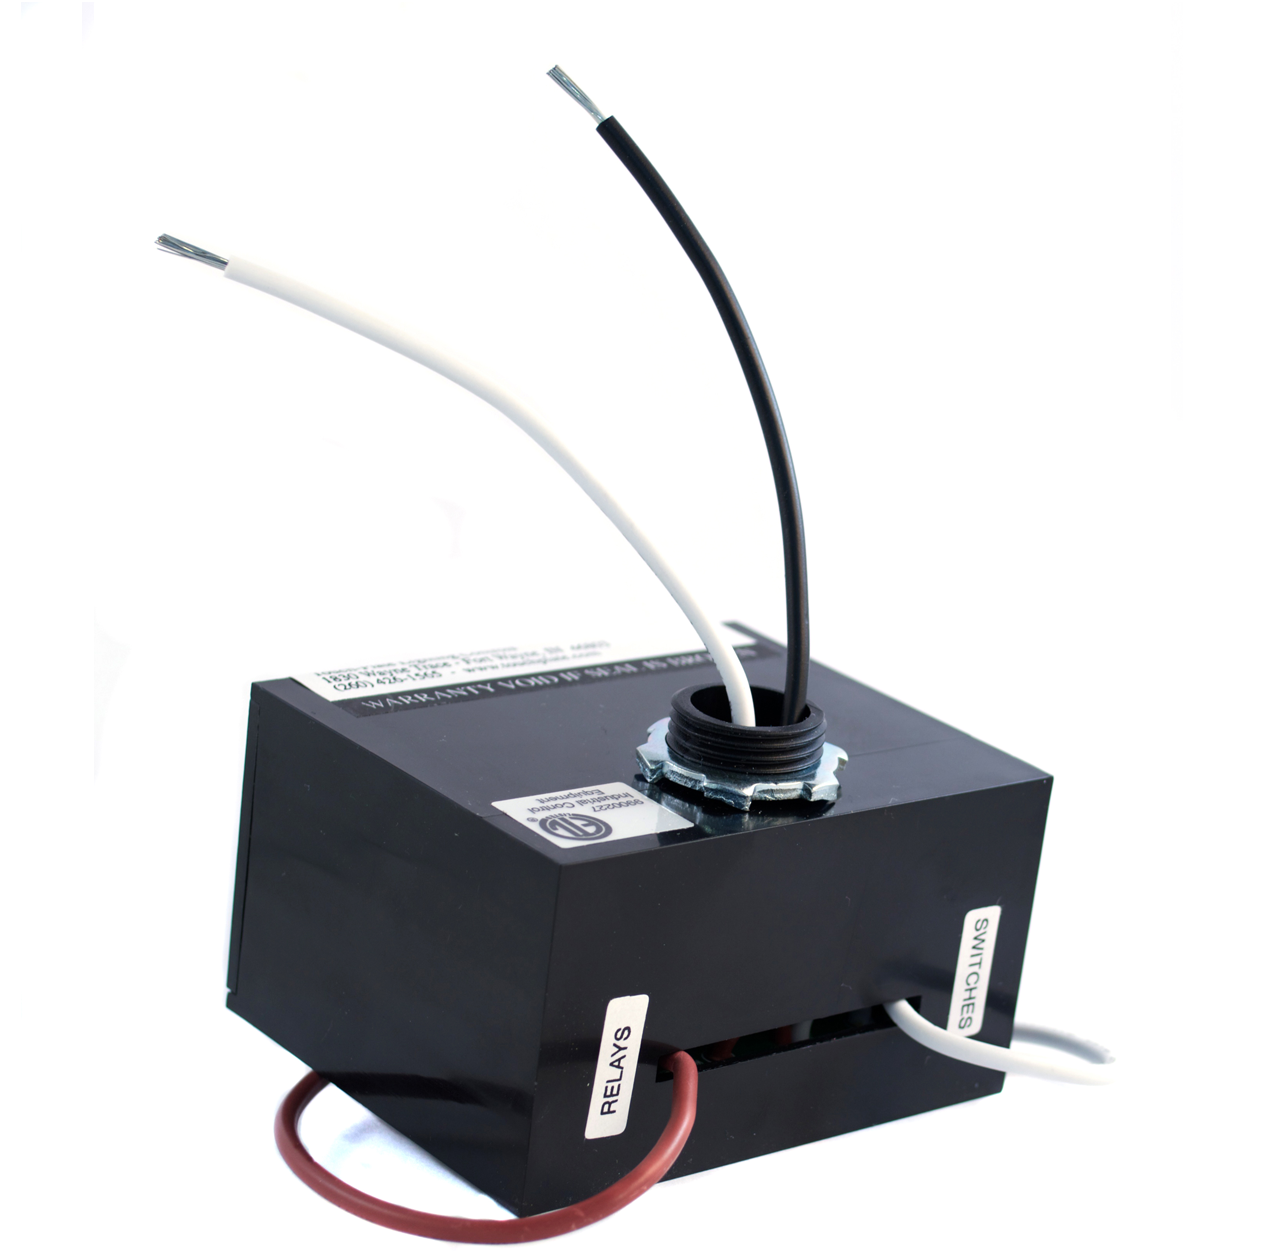 120v transverter - replacement parts - touch-plate lighting controls  touch-plate lighting controls